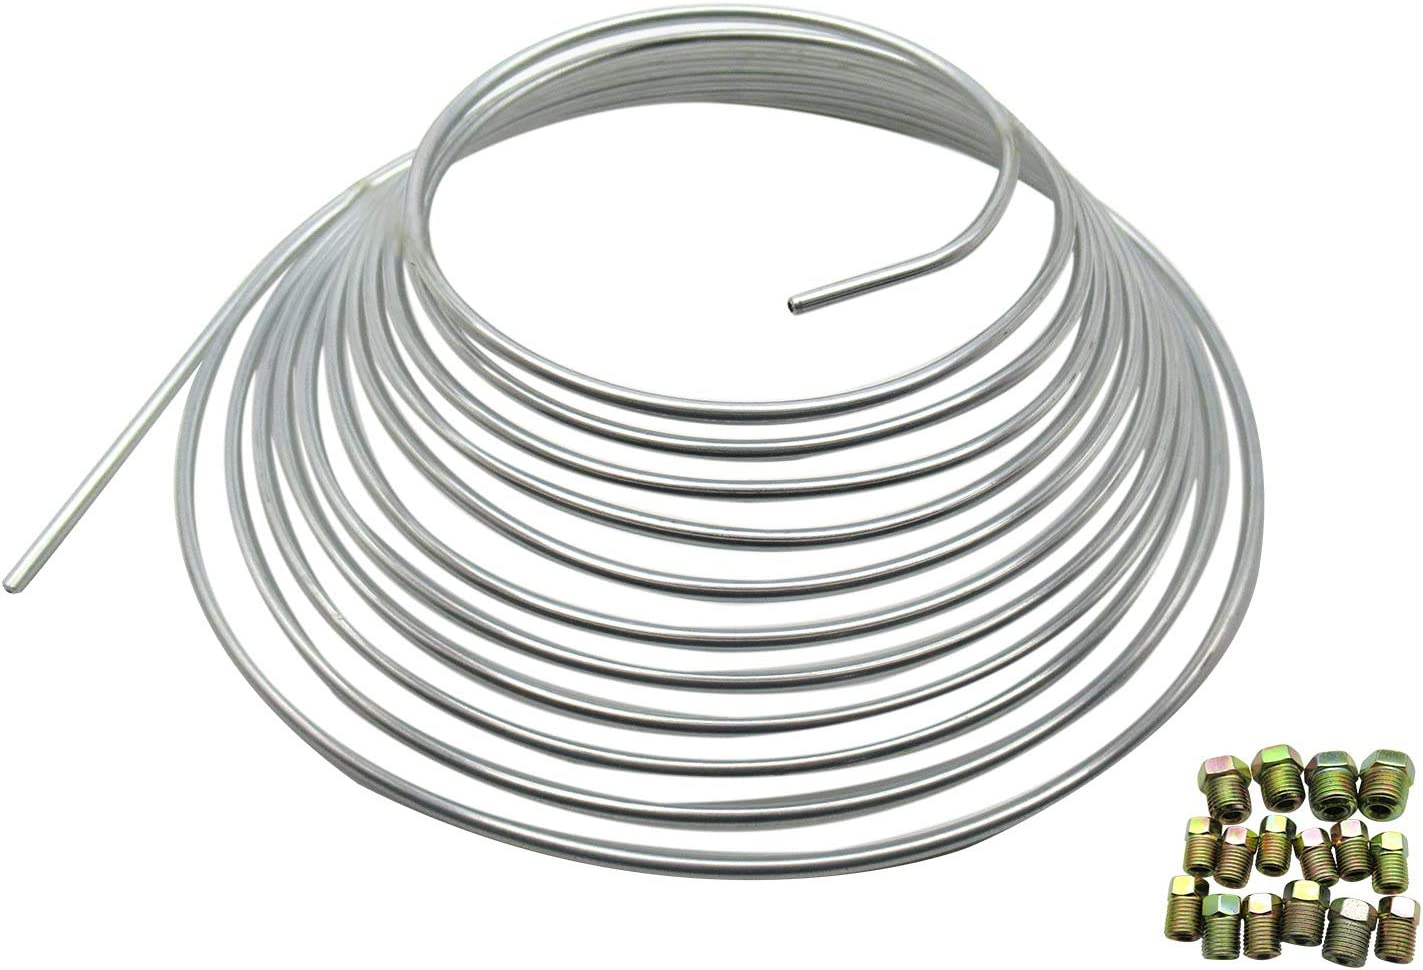 Gxcdizx 3 16 New product type Copper-Nickel Alloy Line Brake C Replacement Tubing Shipping included